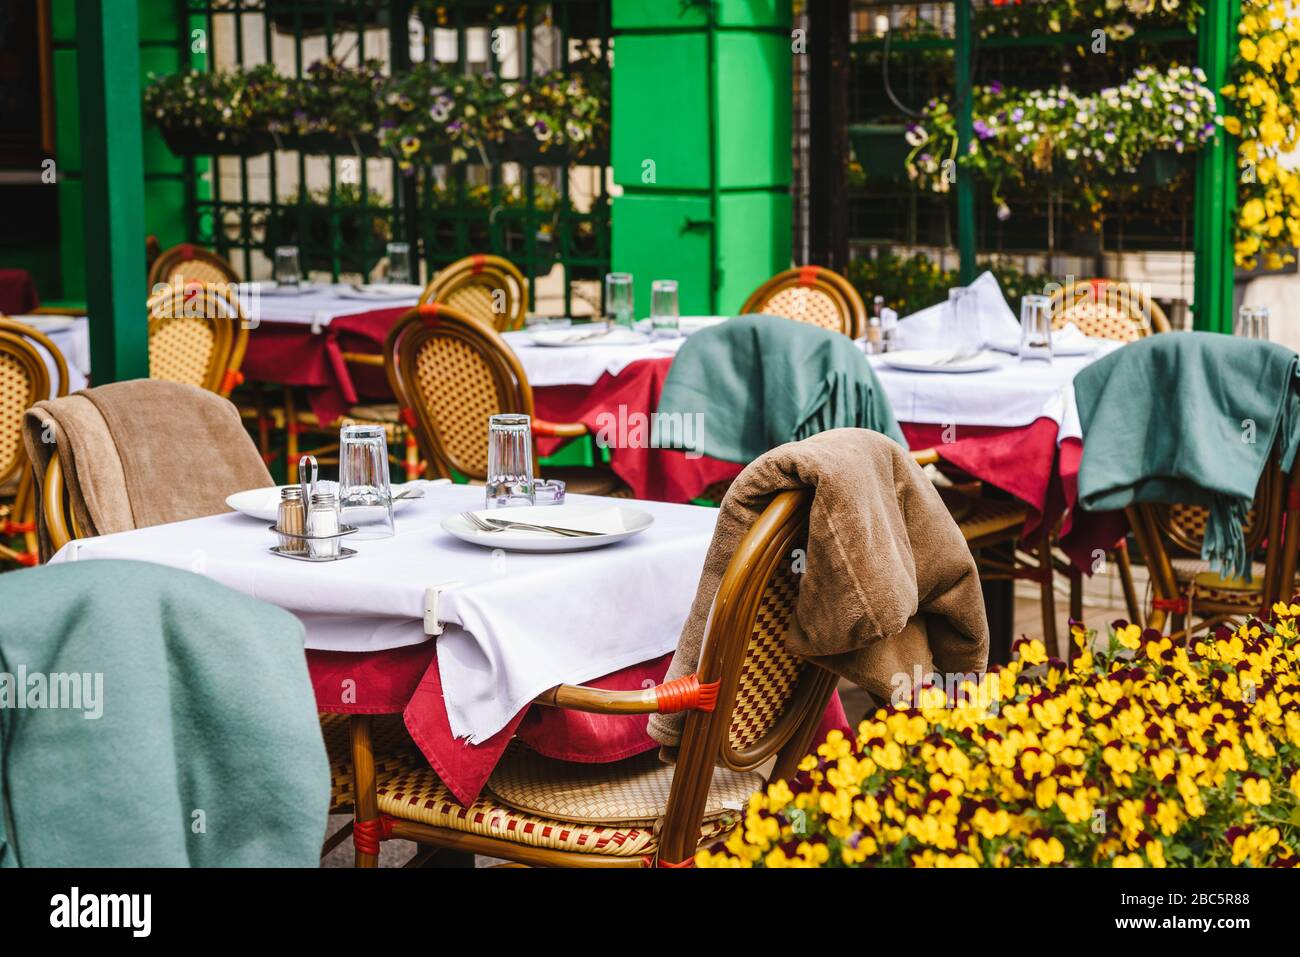 Beautiful Retro Styled Cafe Restaurant Exterior Outdoor Chairs And Tables And Fresh Flowers Stock Photo Alamy